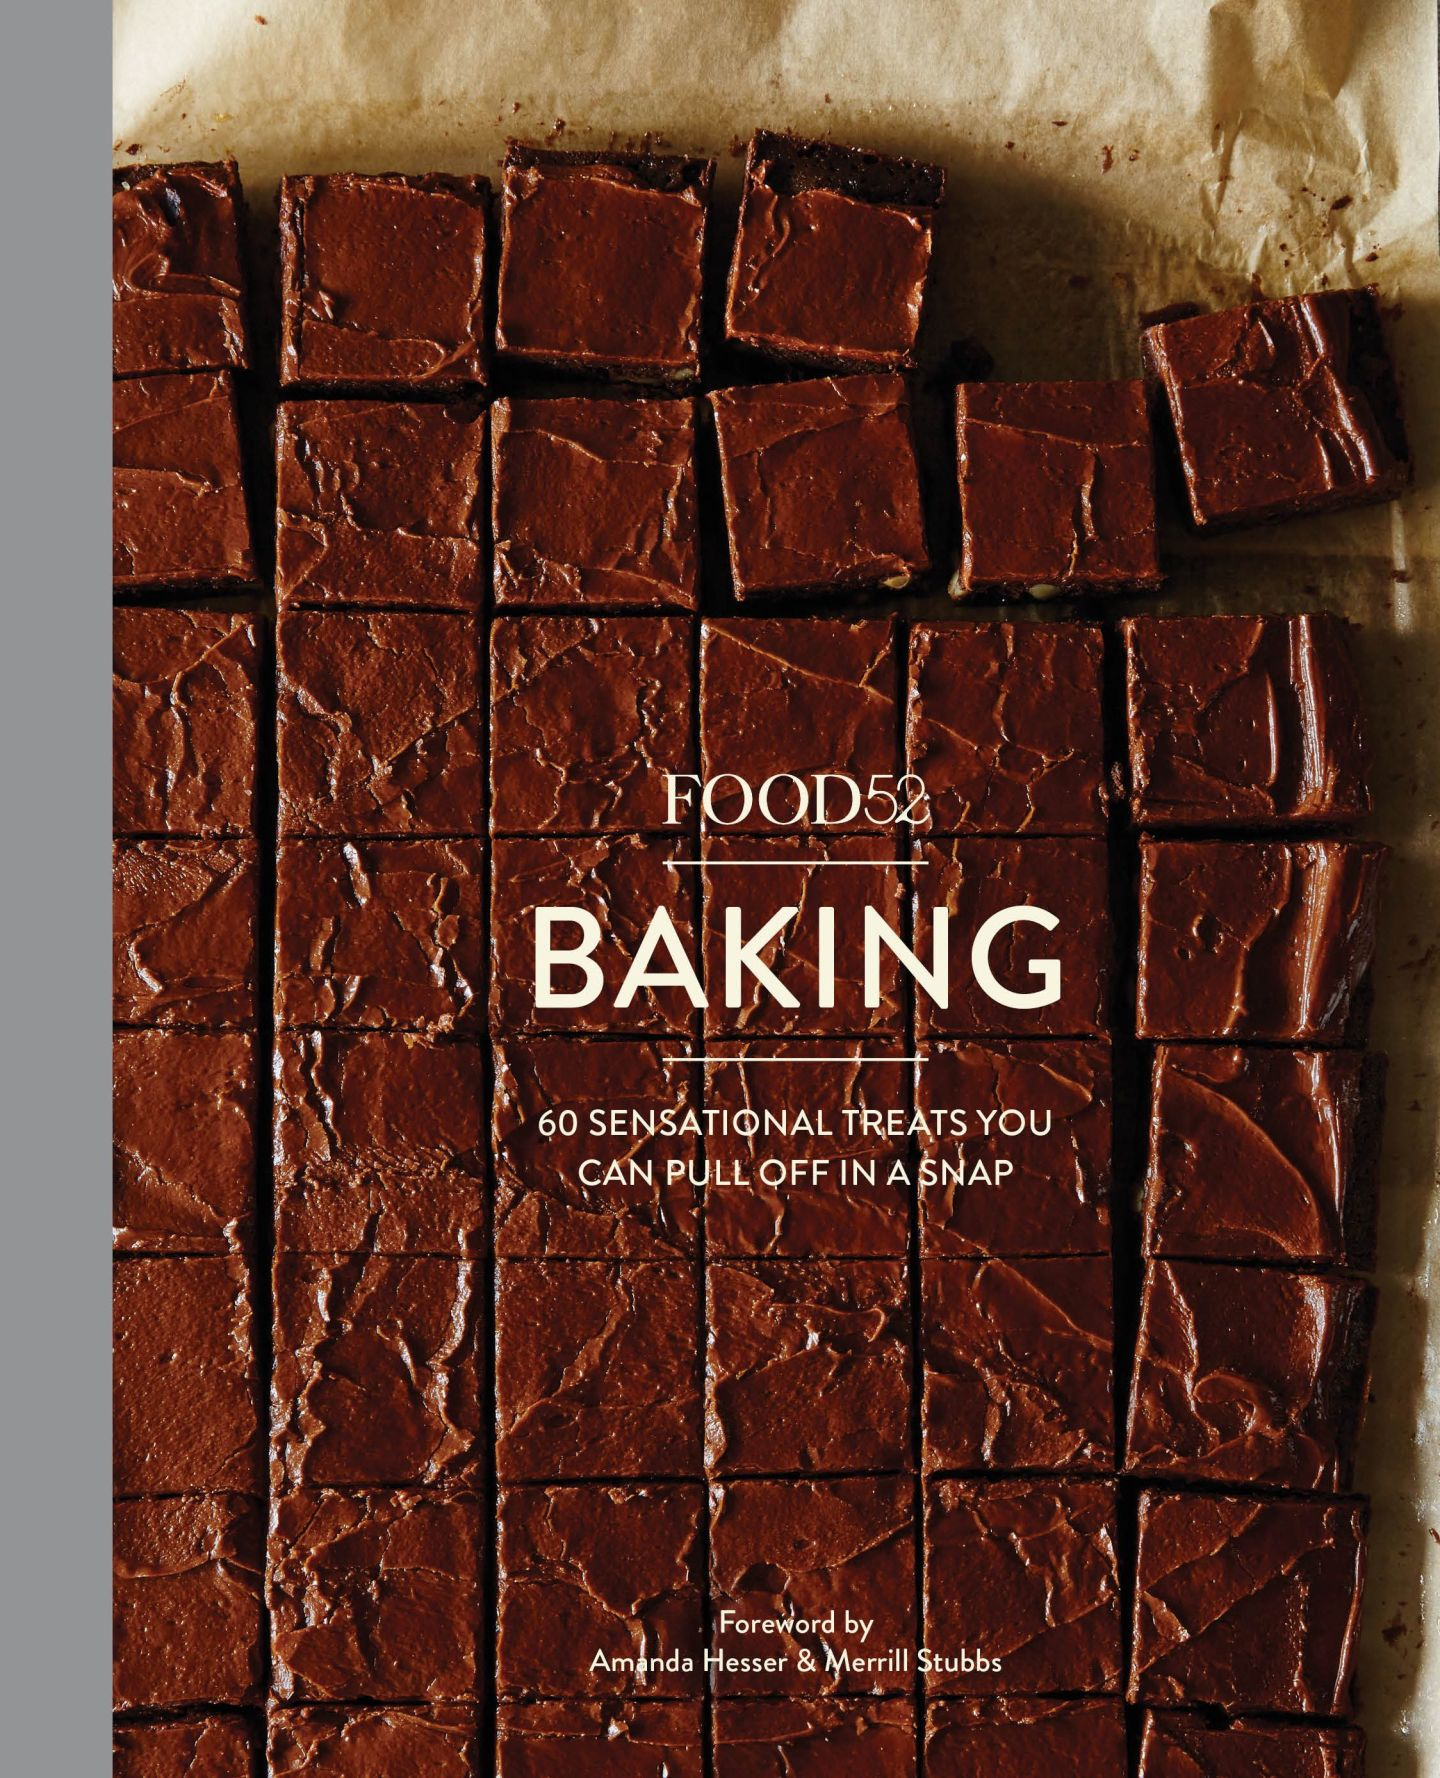 FOOD 52 Baking edited by Amanda Hesser and Merrill Stubbs